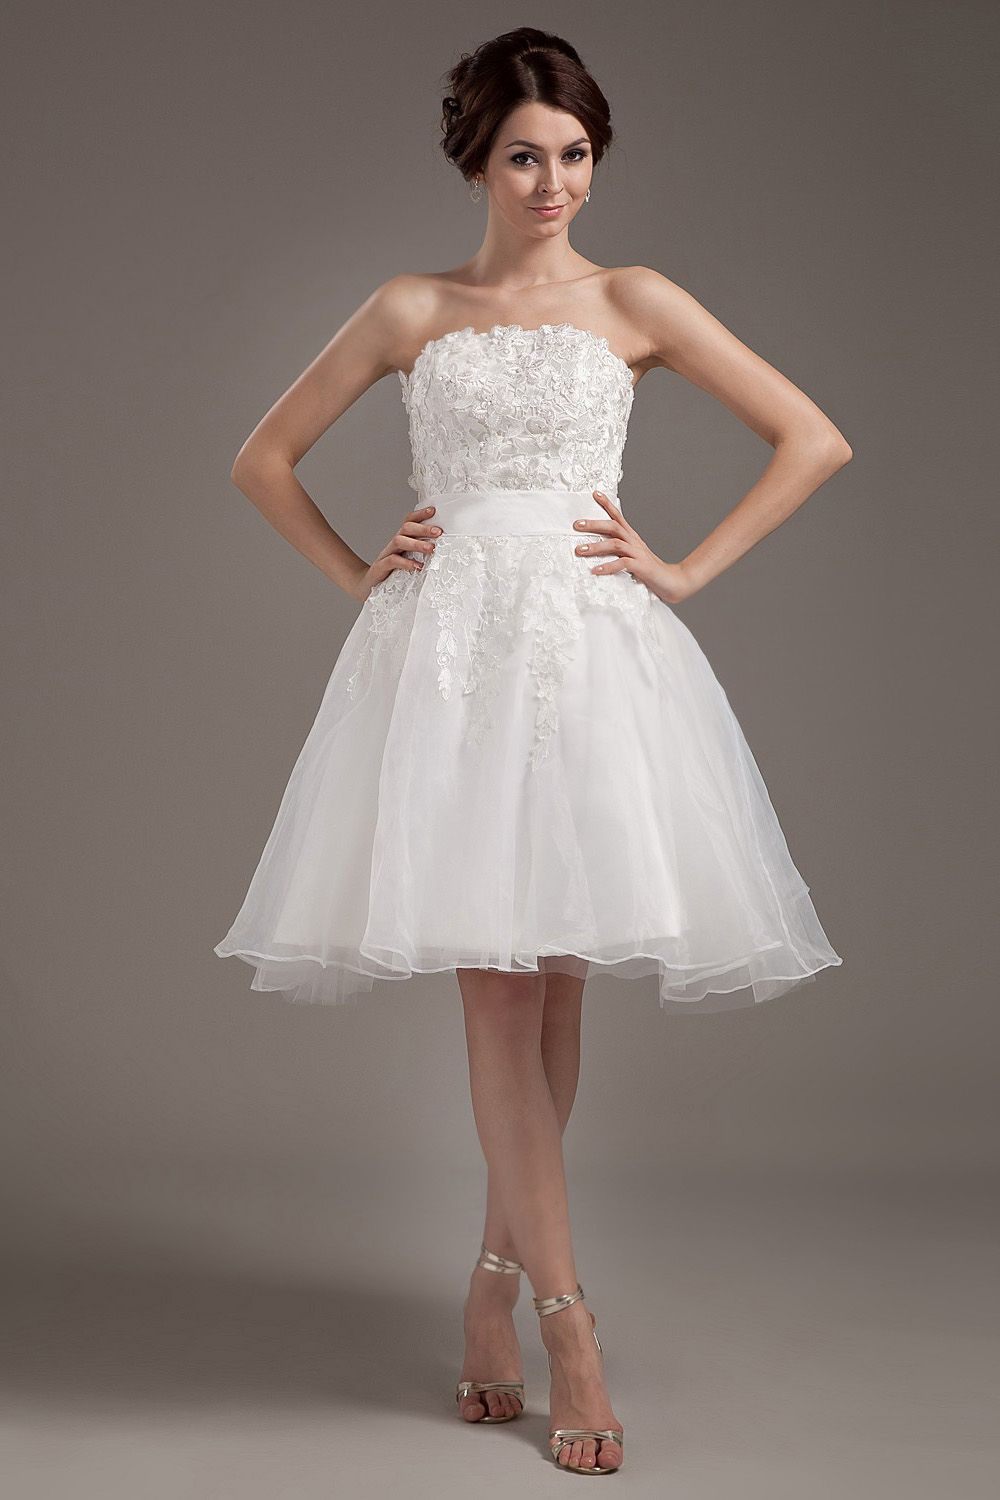 Lace dresses for wedding reception  ALine White Organza KneeLength Strapless Wedding Dress  Vestidos